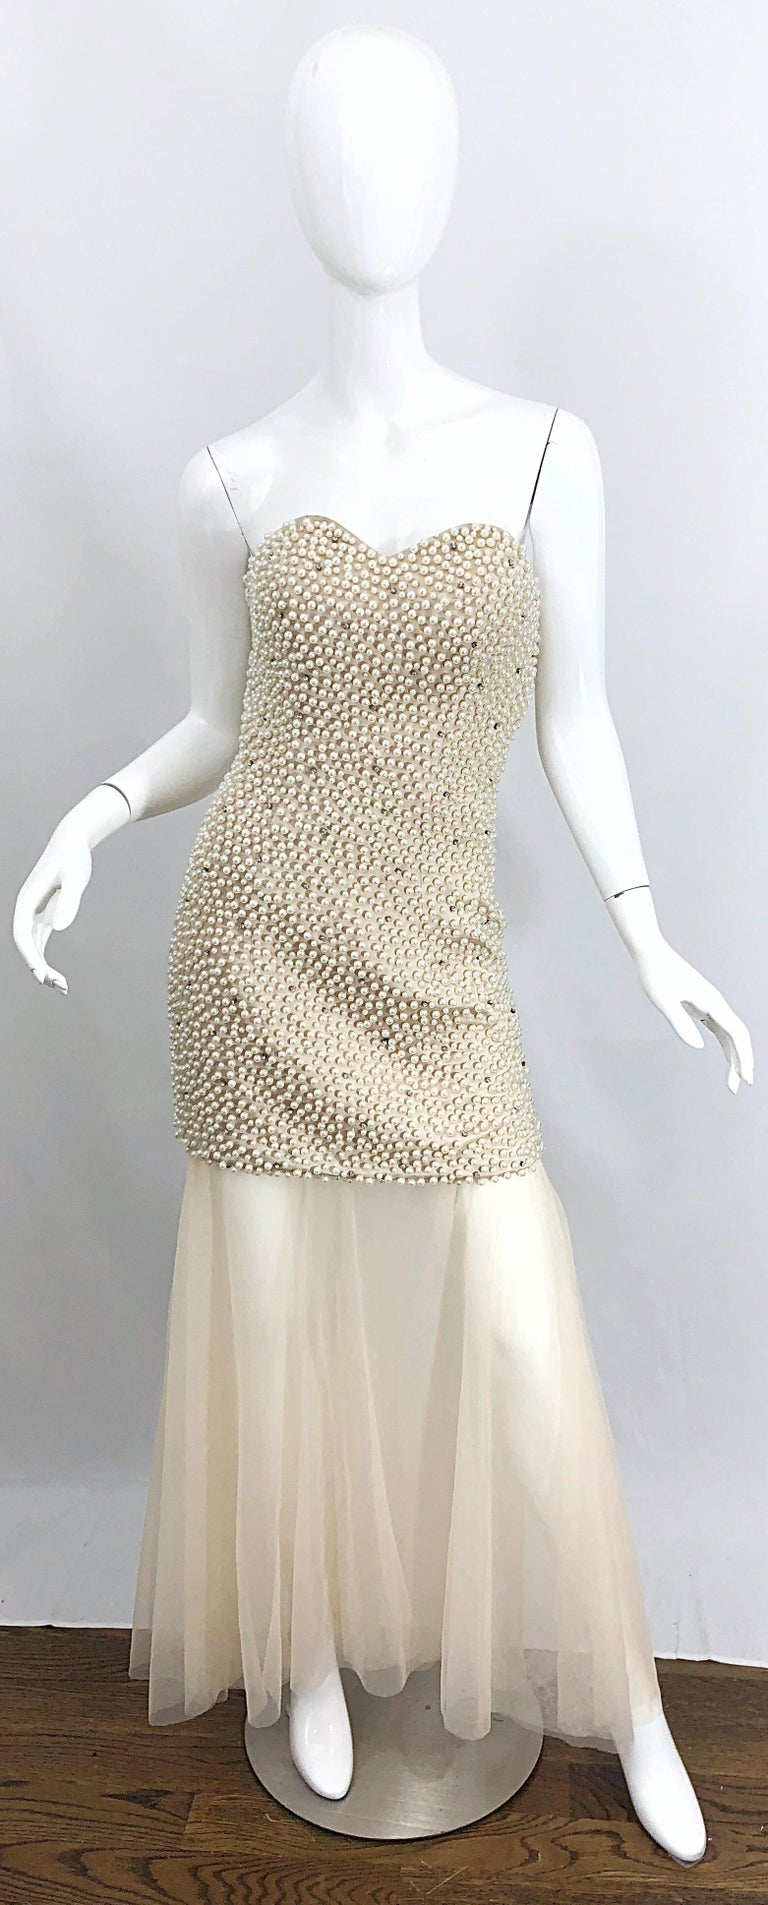 Phenomenal 1990s Couture Pearl + Rhinestone Encrusted Strapless Beige 90s Gown In Excellent Condition For Sale In Chicago, IL